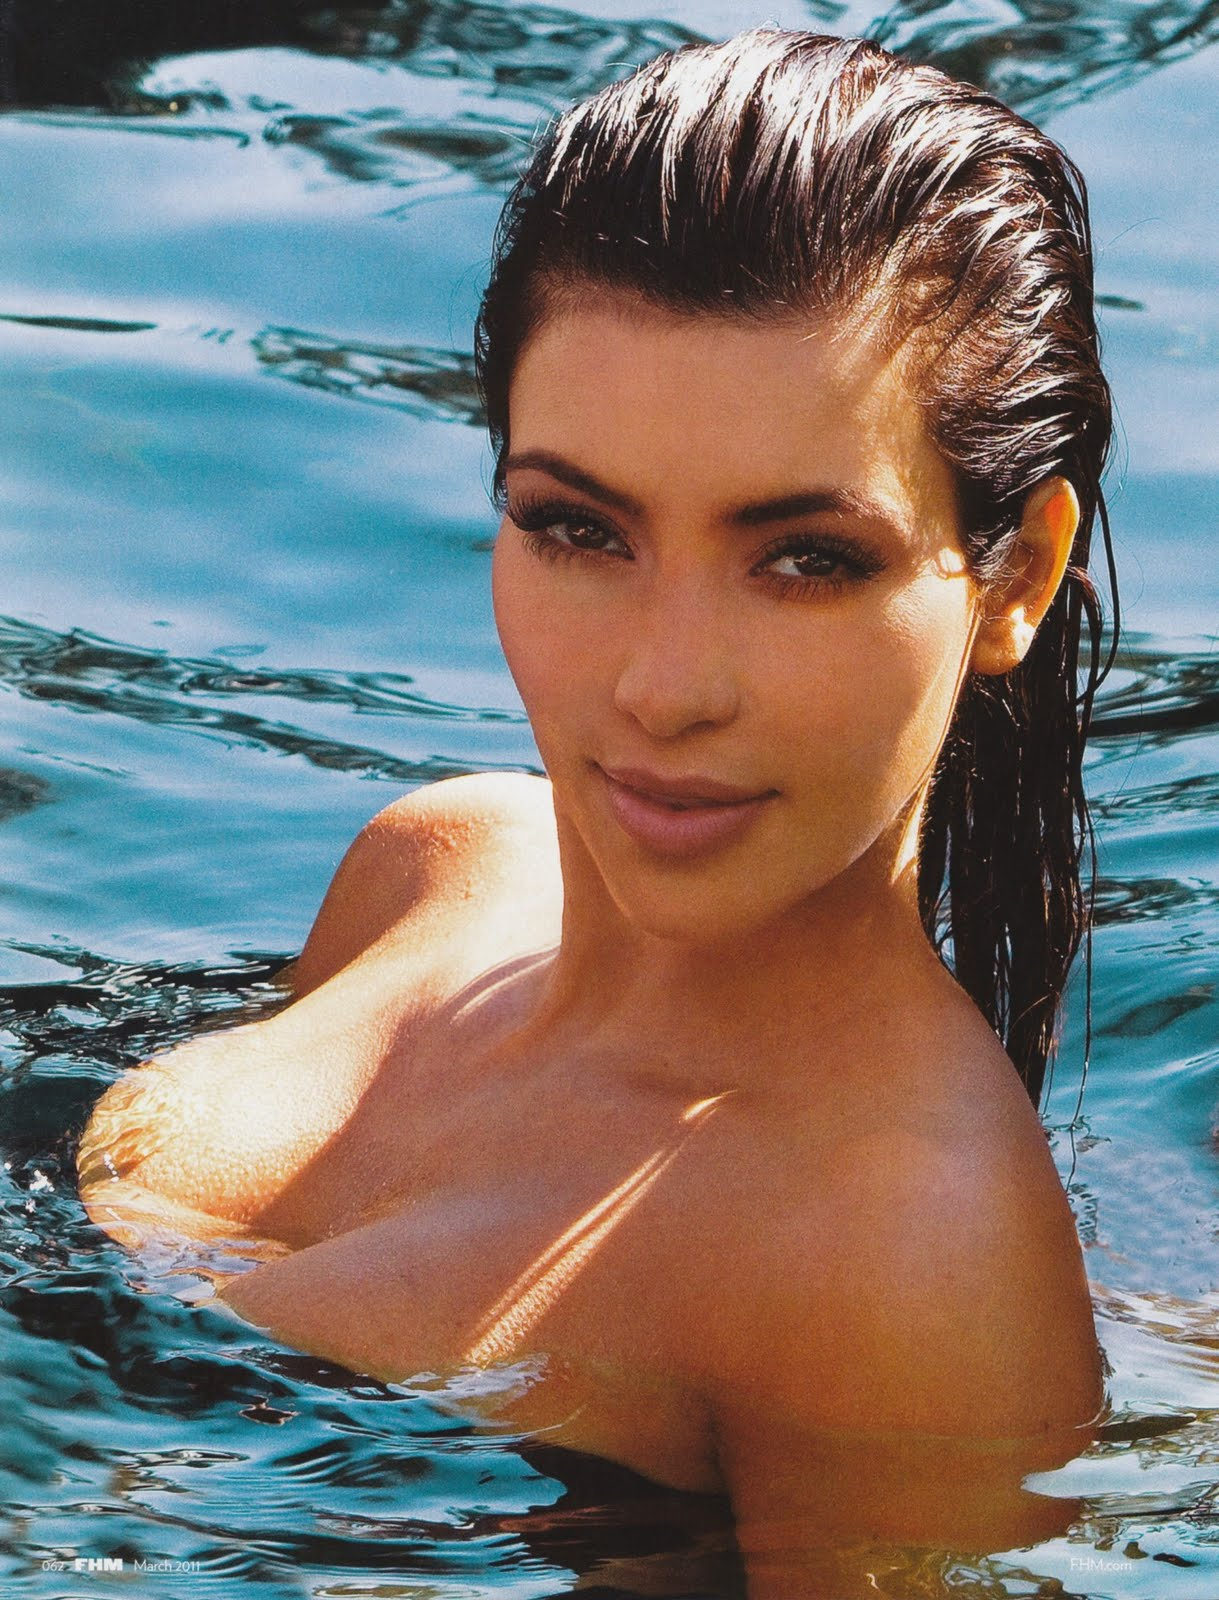 Kim Kardashian photos